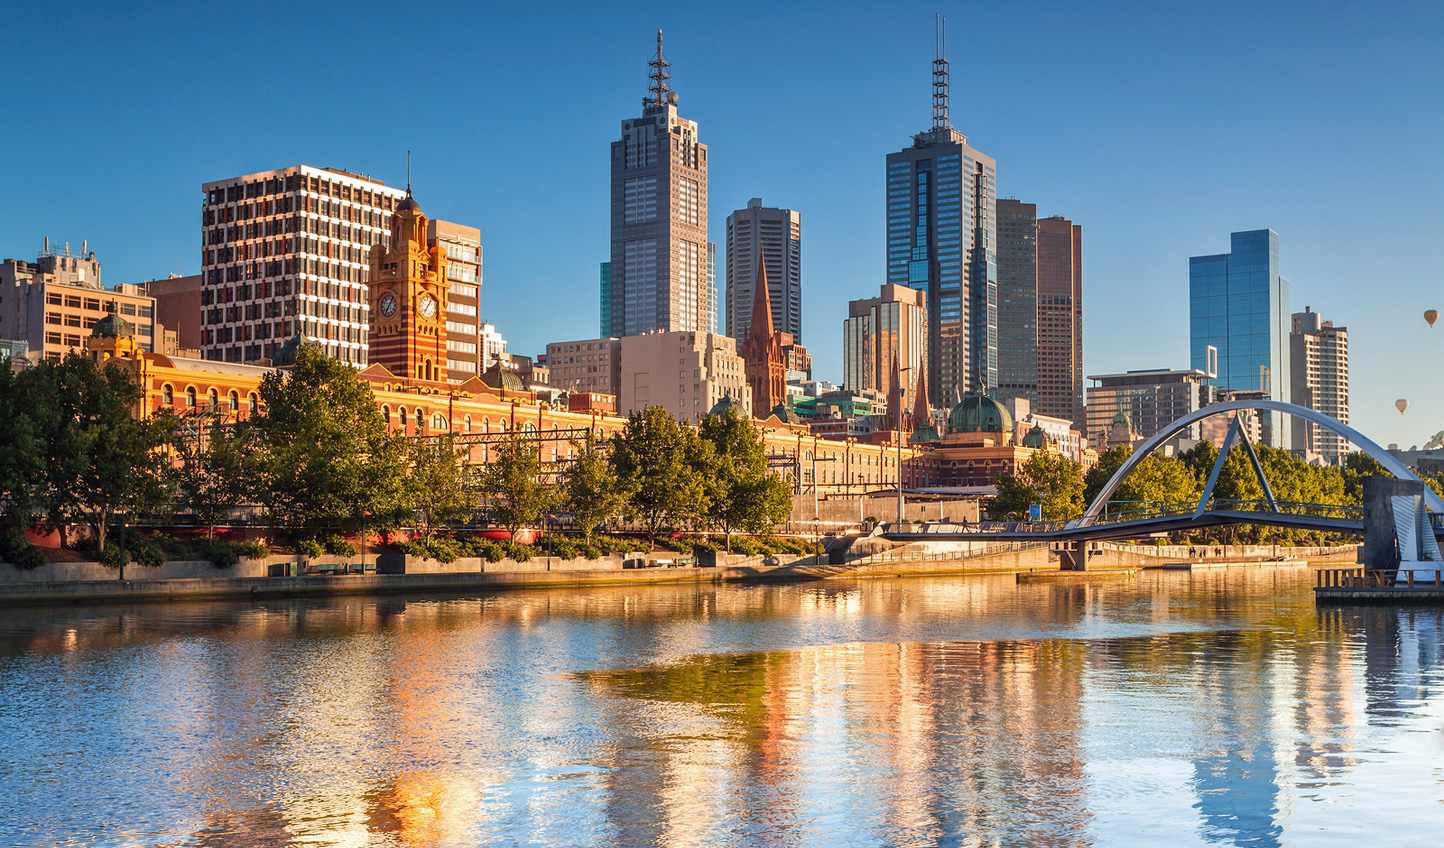 Wander the banks of the Yarra River